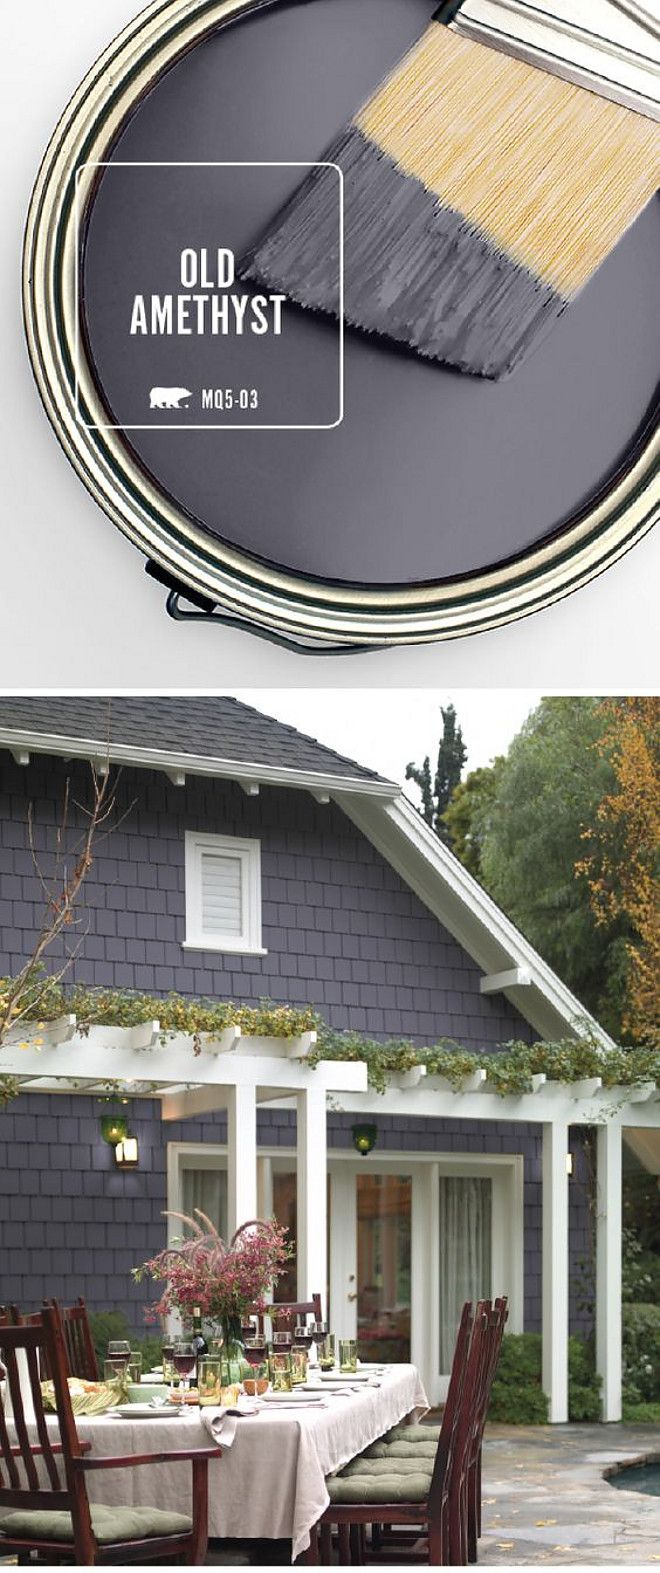 Designer Paint Color Pick Best Dark Grey Exterior Paint Color Behr Old  Amethyst. I Would